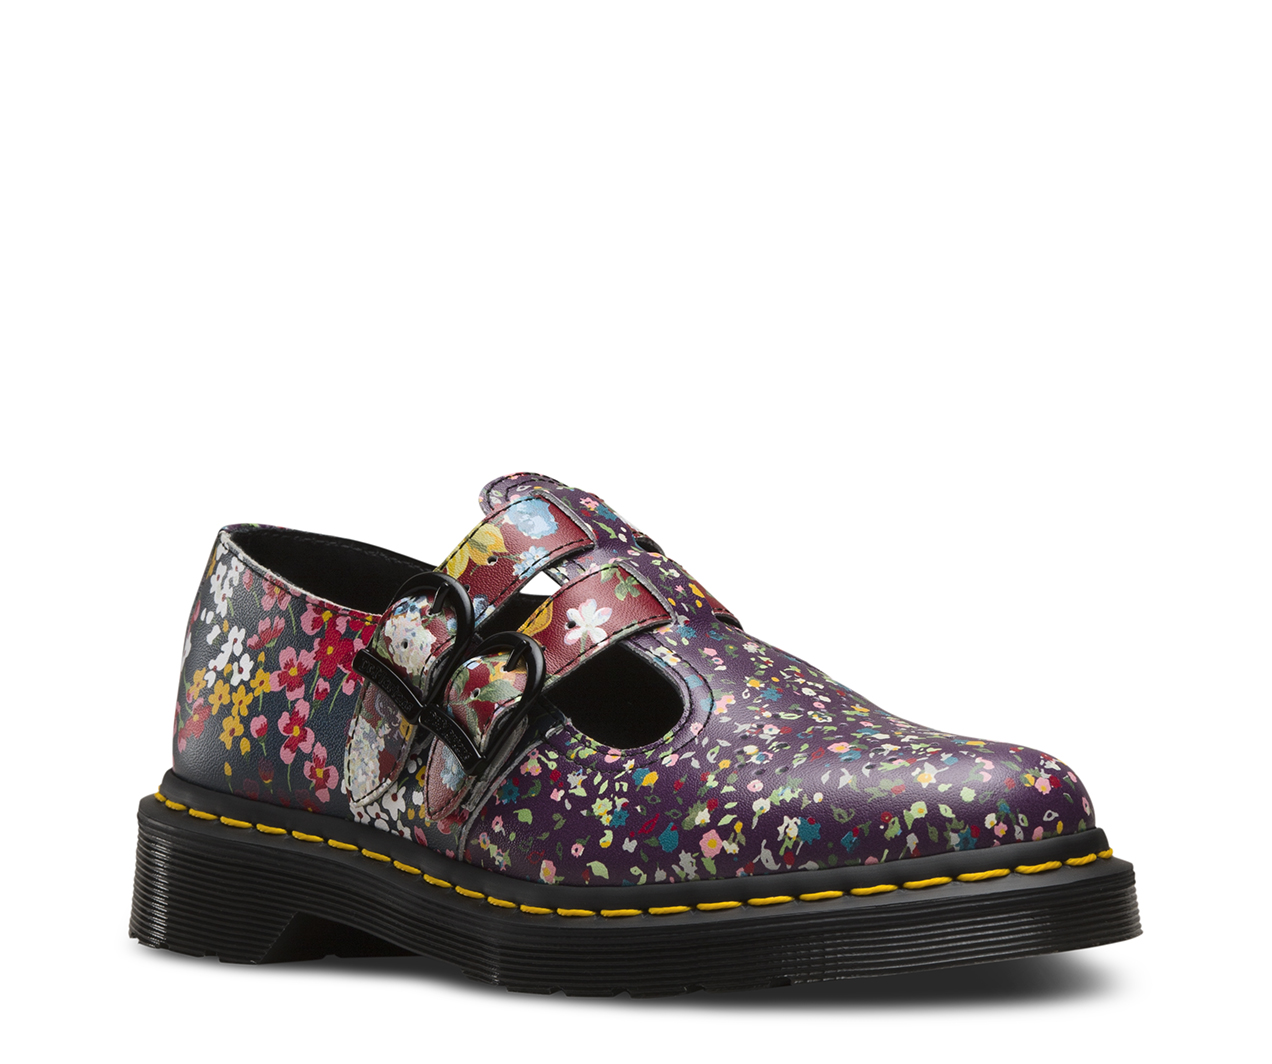 8065 floral clash women 39 s shoes official dr martens store uk. Black Bedroom Furniture Sets. Home Design Ideas